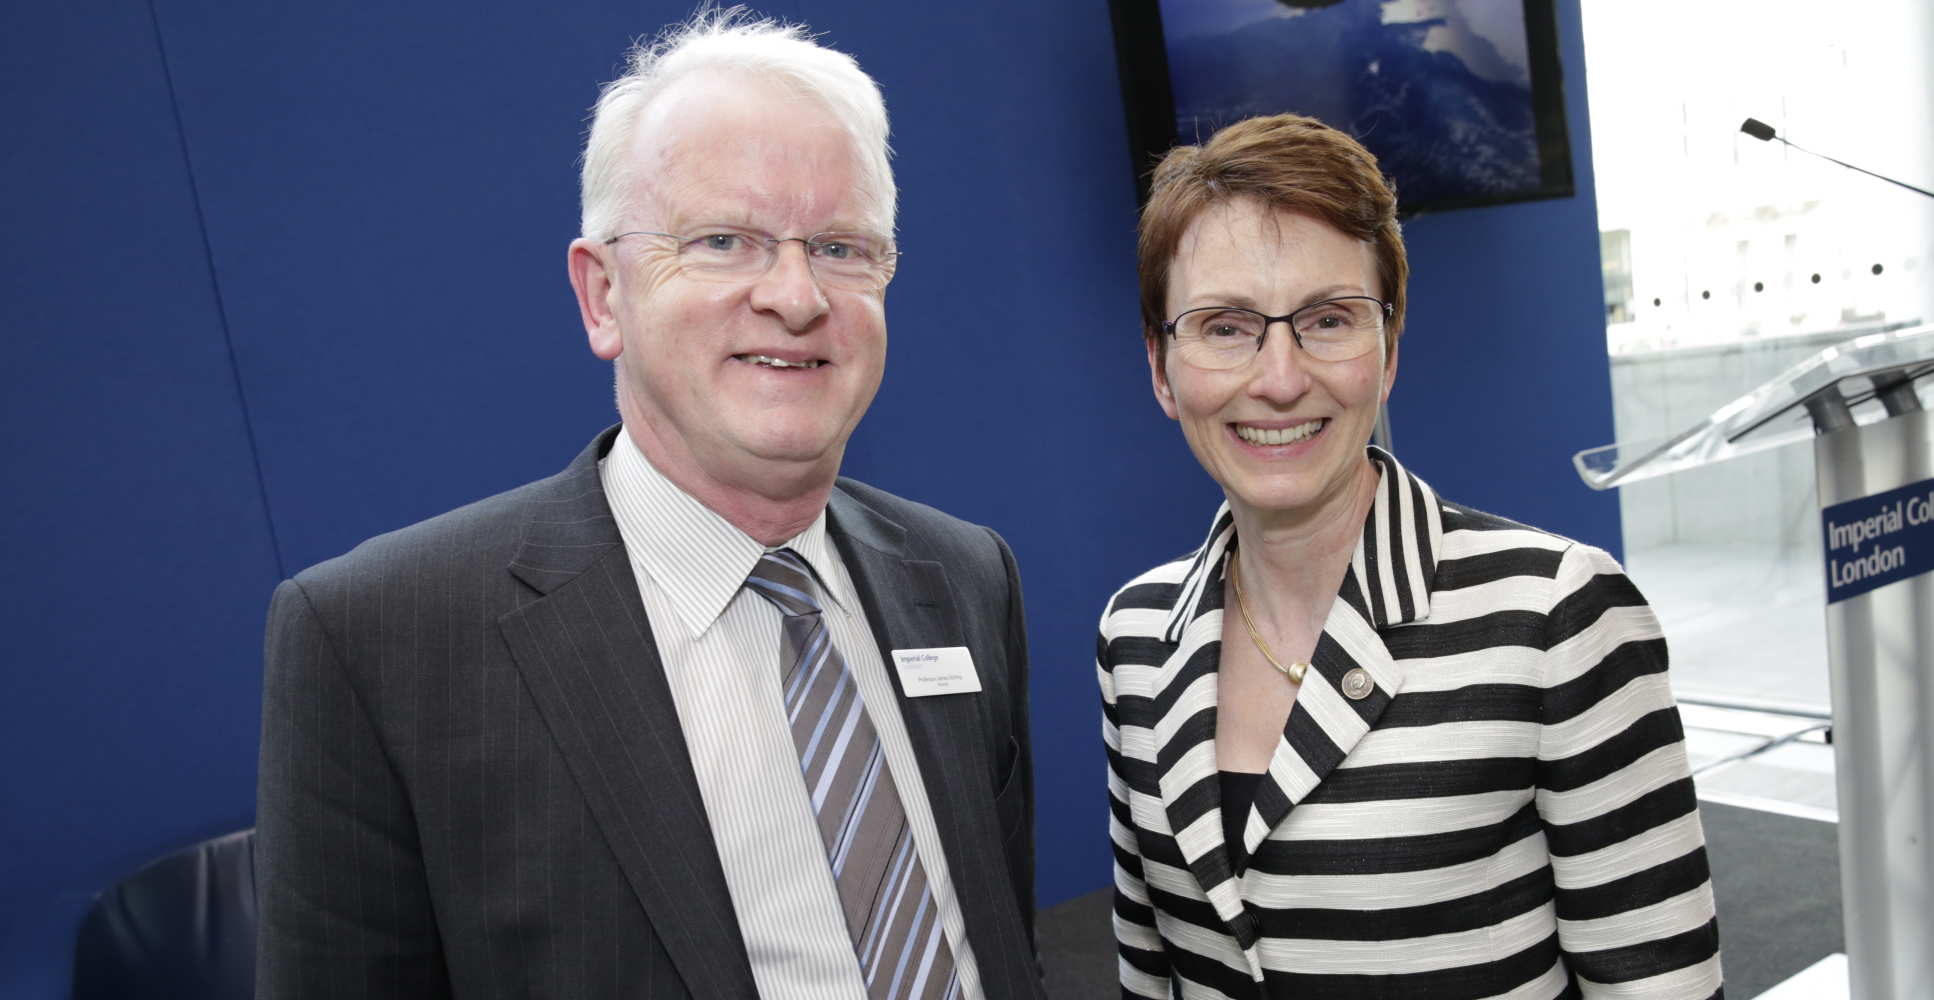 Professor Stirling with Imperial colleague and Britain's first astronaut Helen Sharman